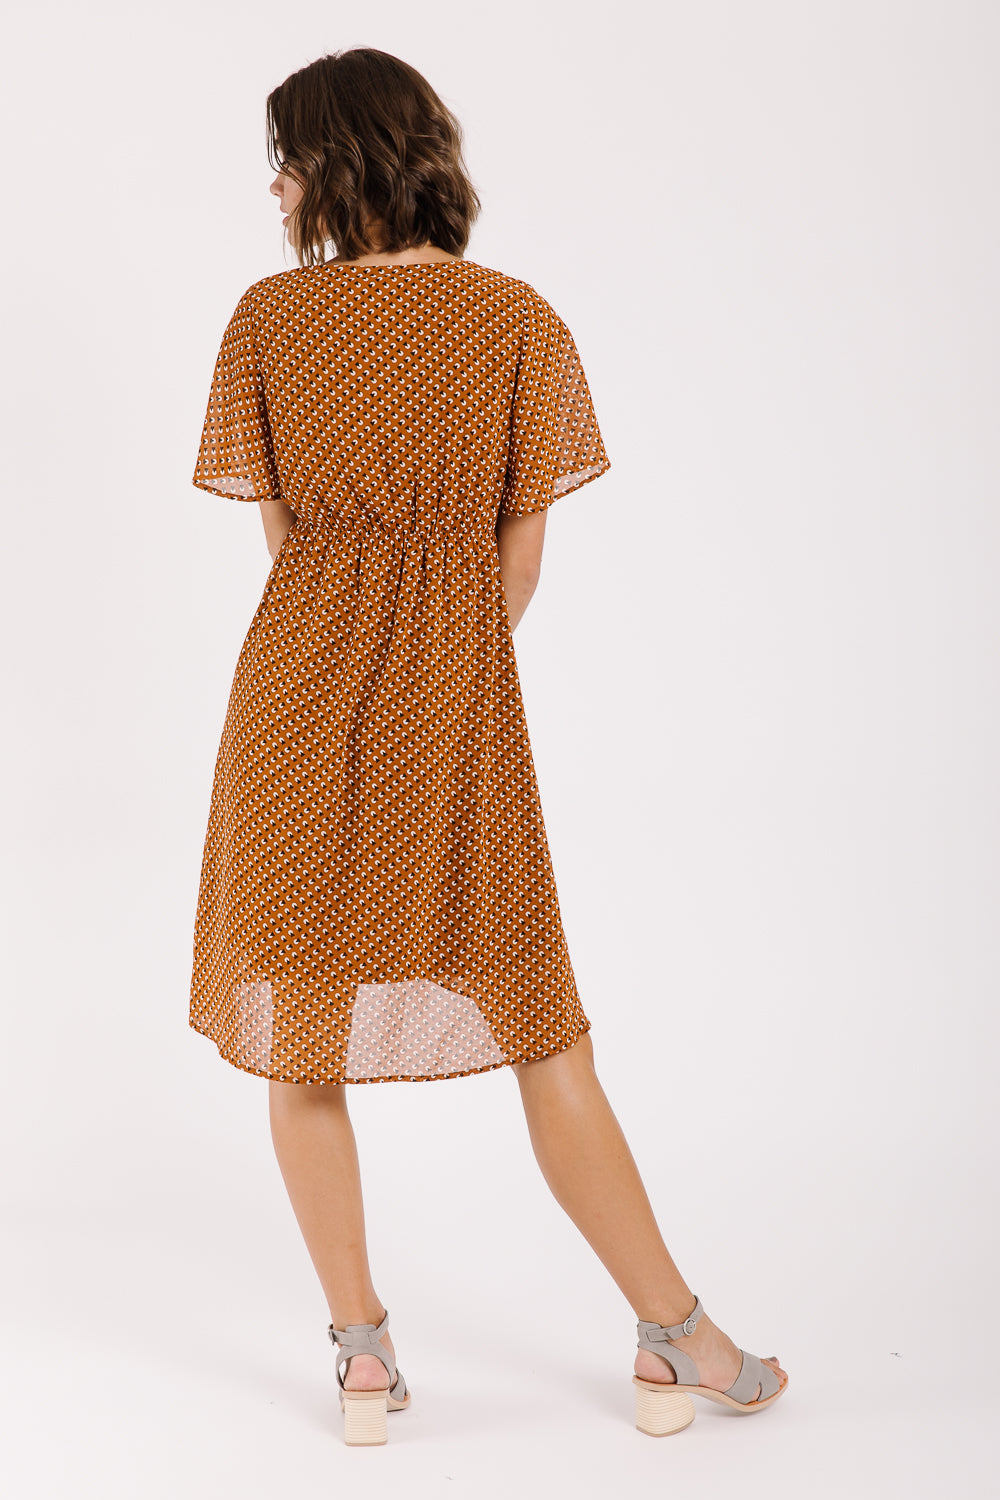 Piper & Scoot: The Hamilton Patterned Empire Dress in Rust